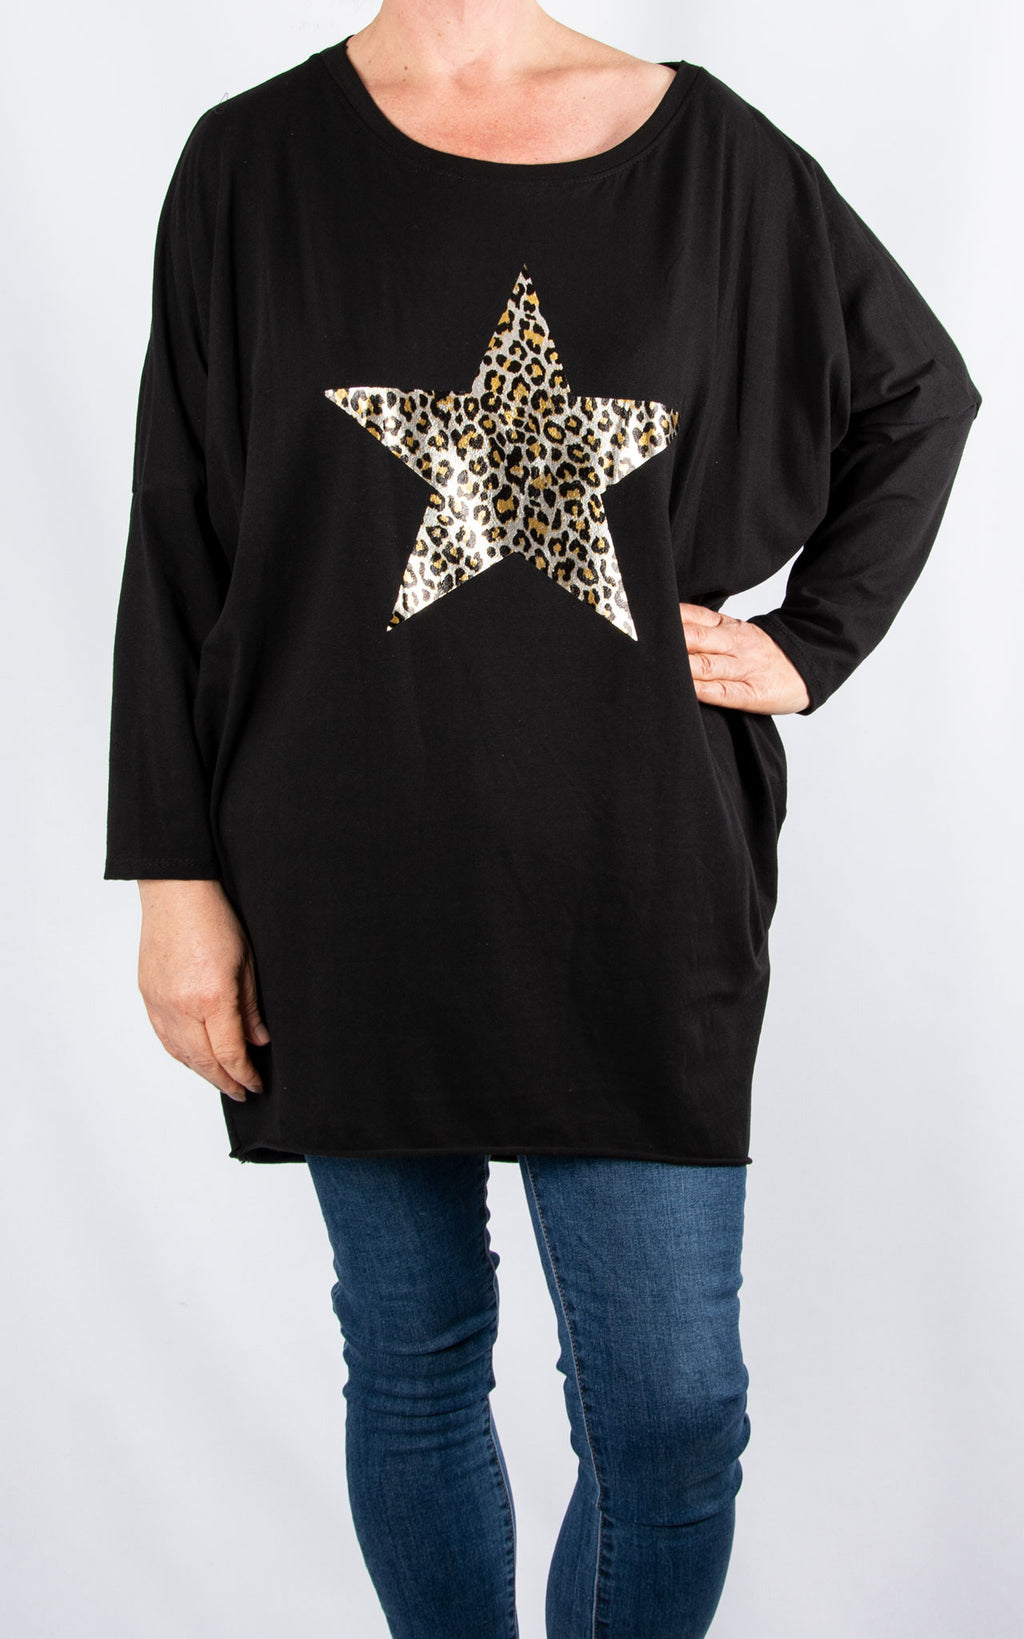 Rachel T Long Sleeve | Leopard Star|Black